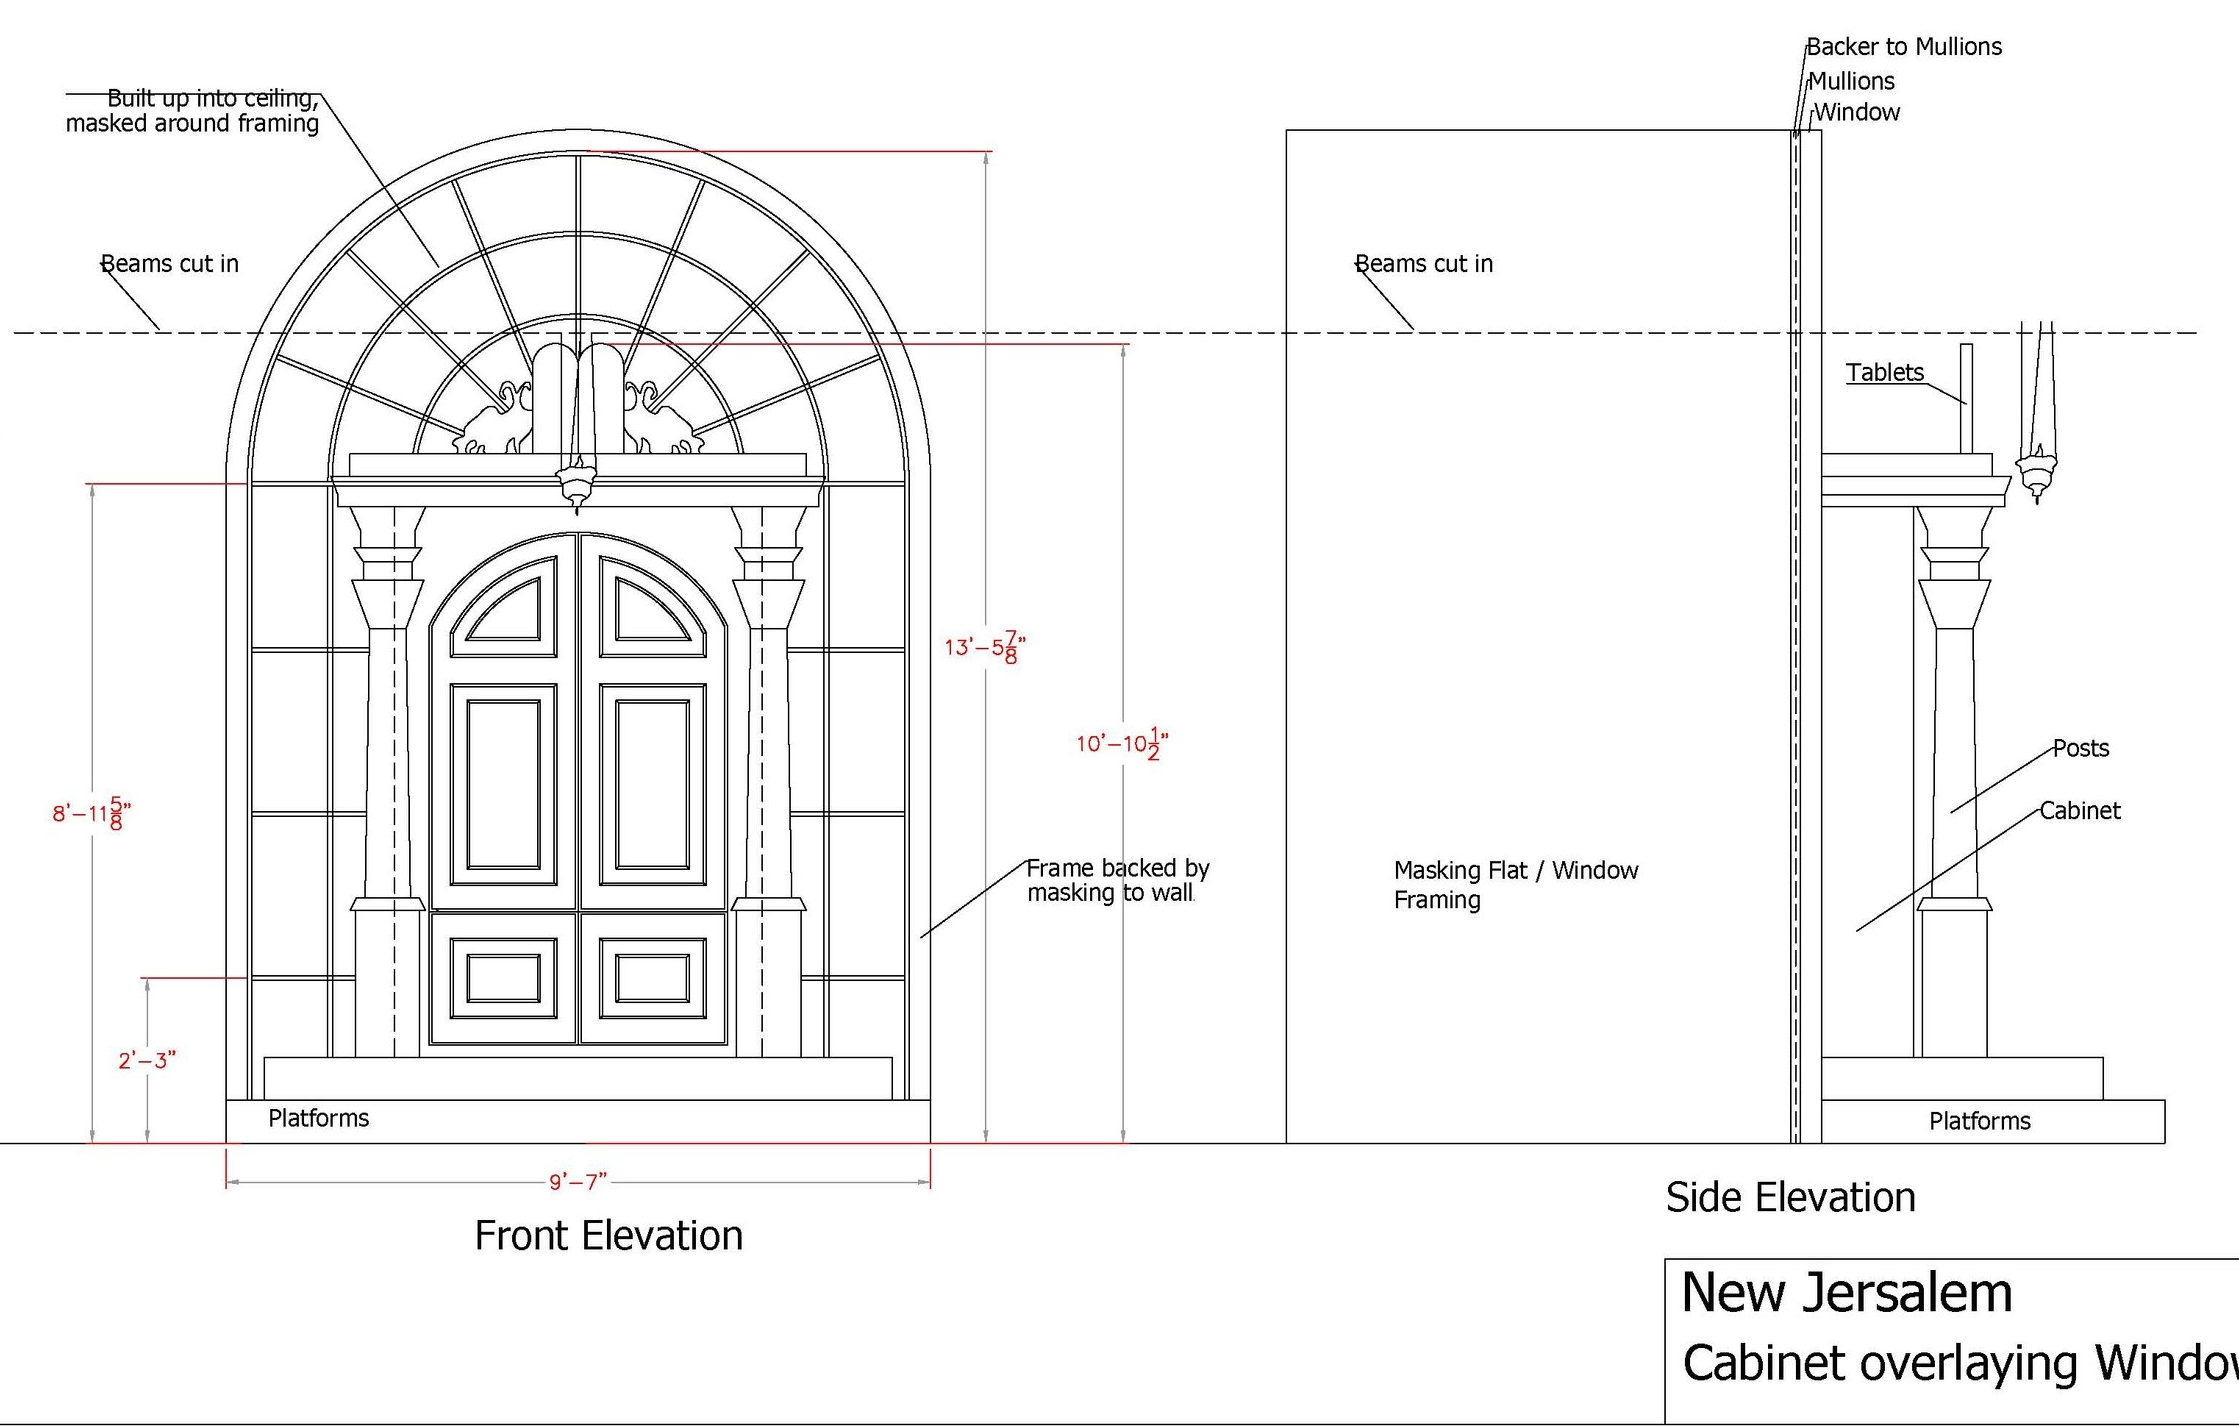 new jerusalem diagram ford mondeo mk3 radio wiring sarah tanner design cabinet window side elevation 5 in scale jpg